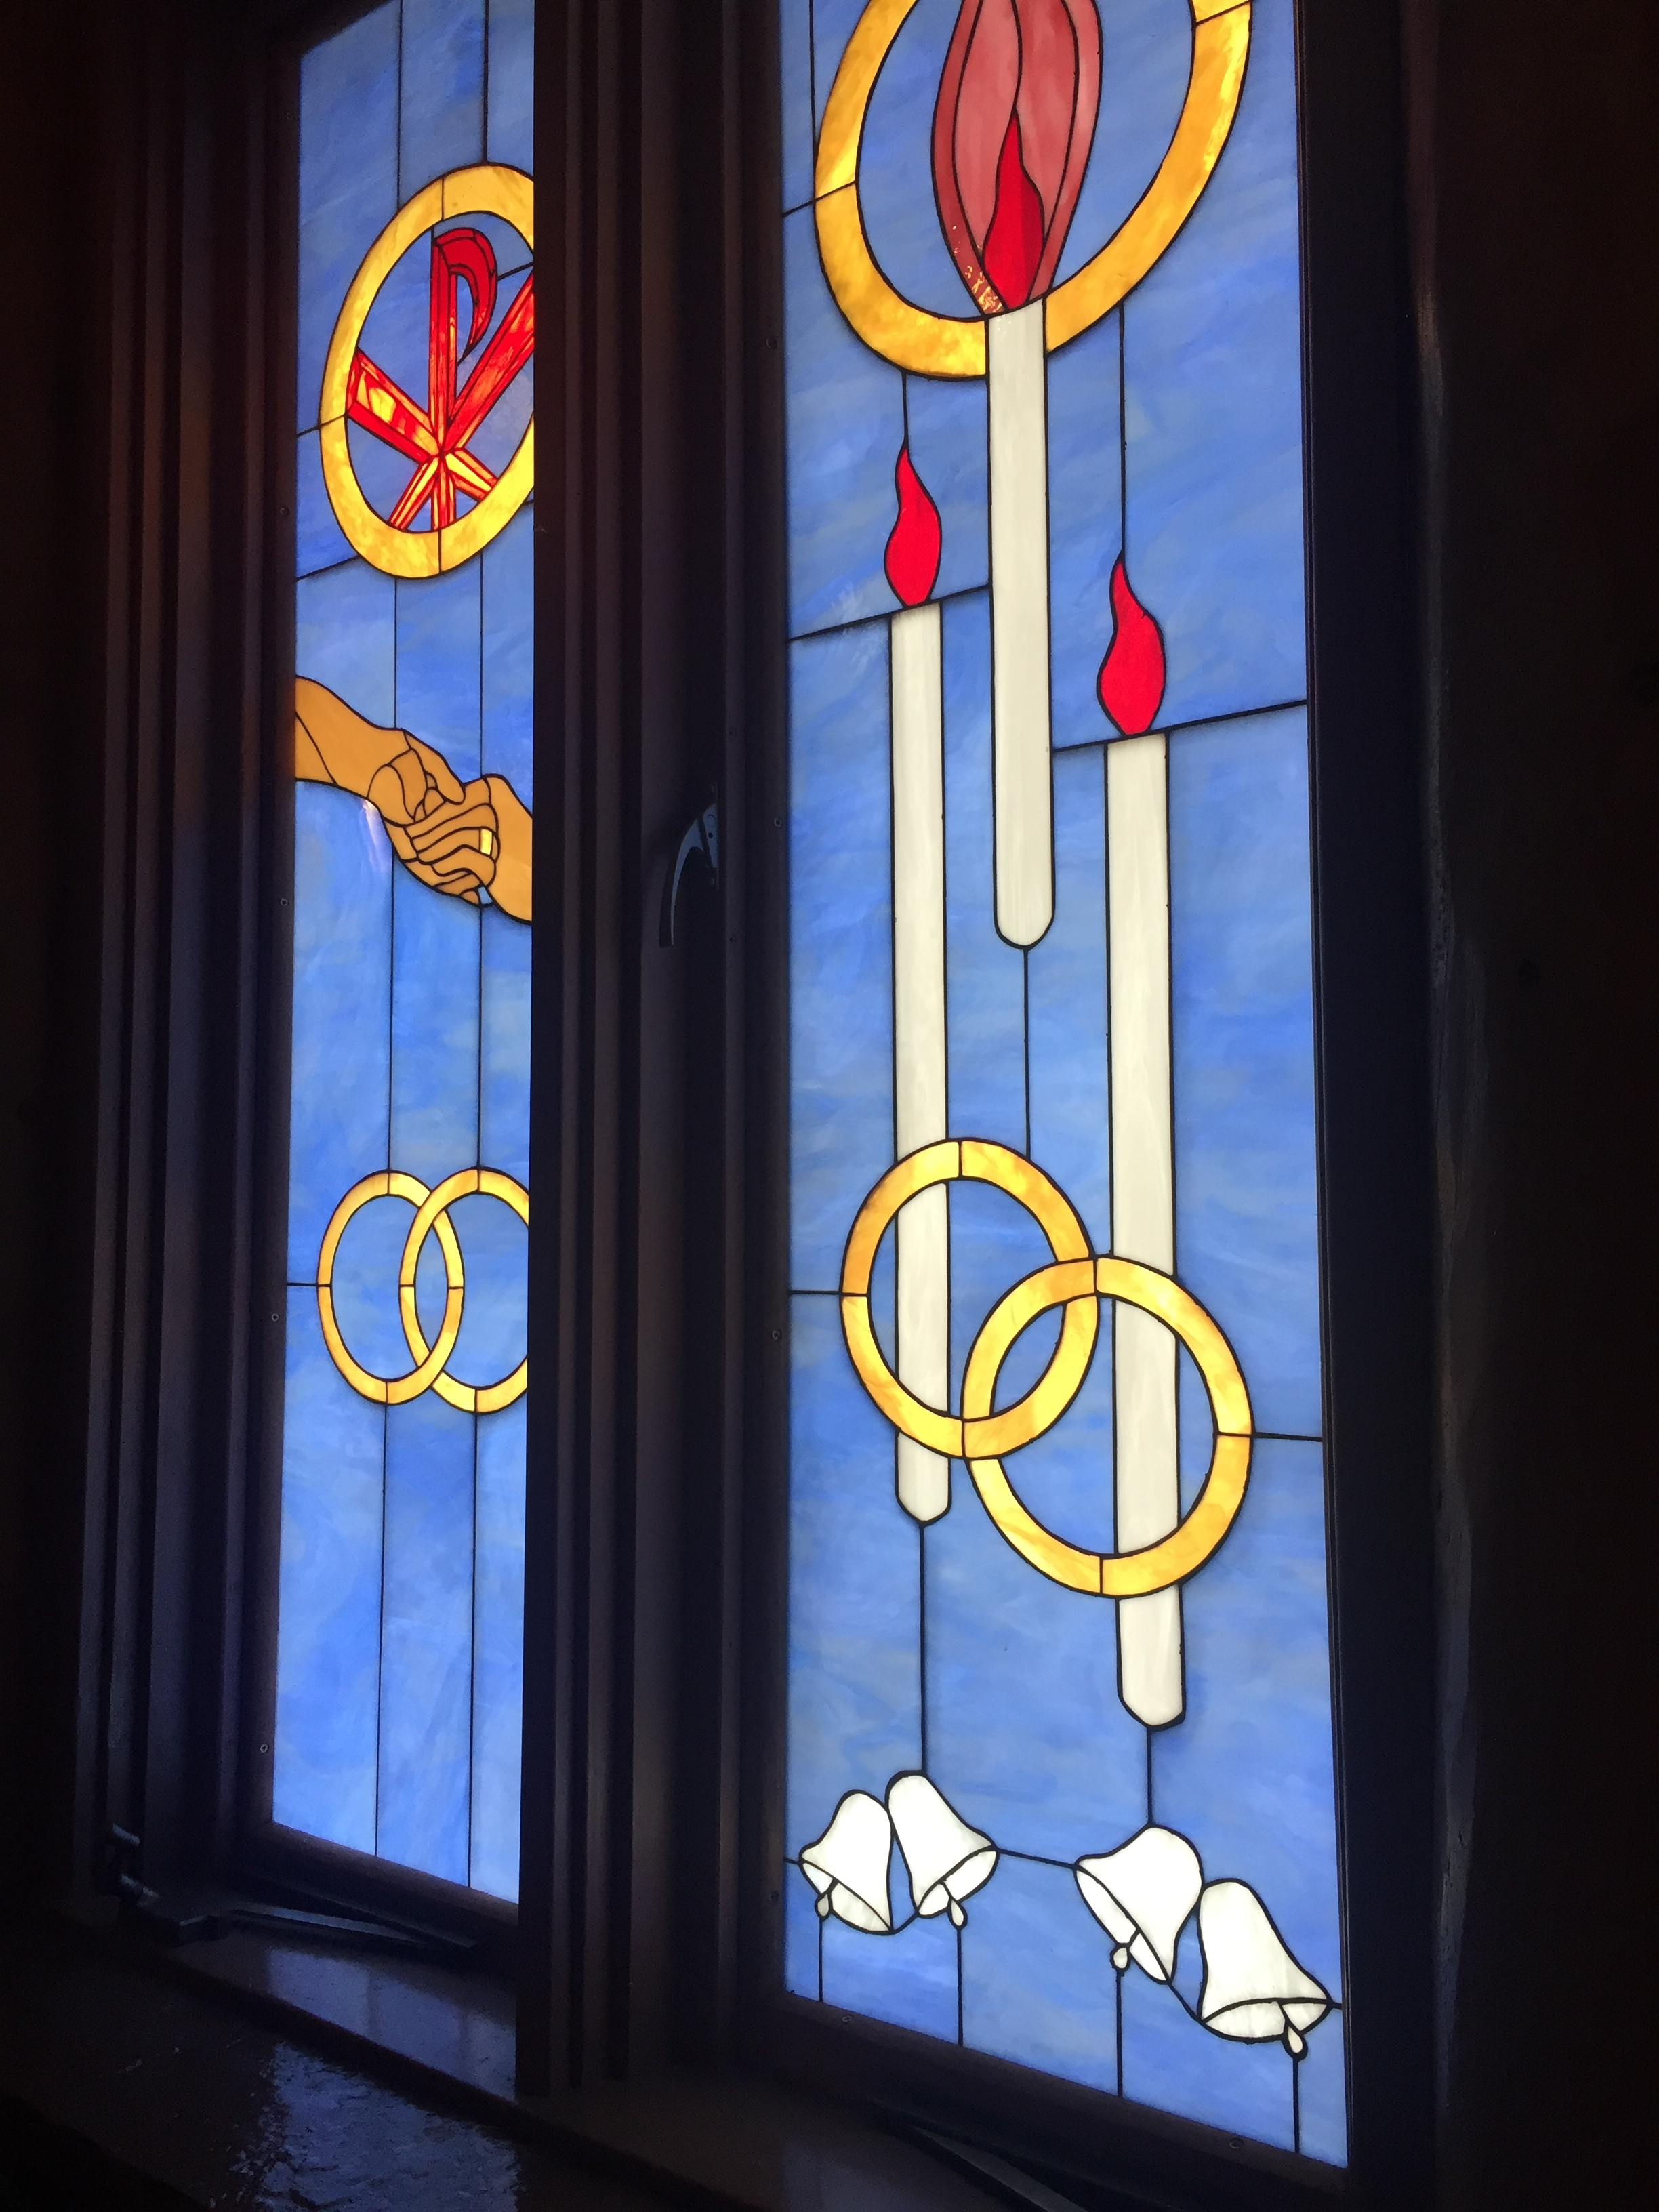 The stained glass windows around the nave showcased the sacraments. Thought this one was especially appropriate!